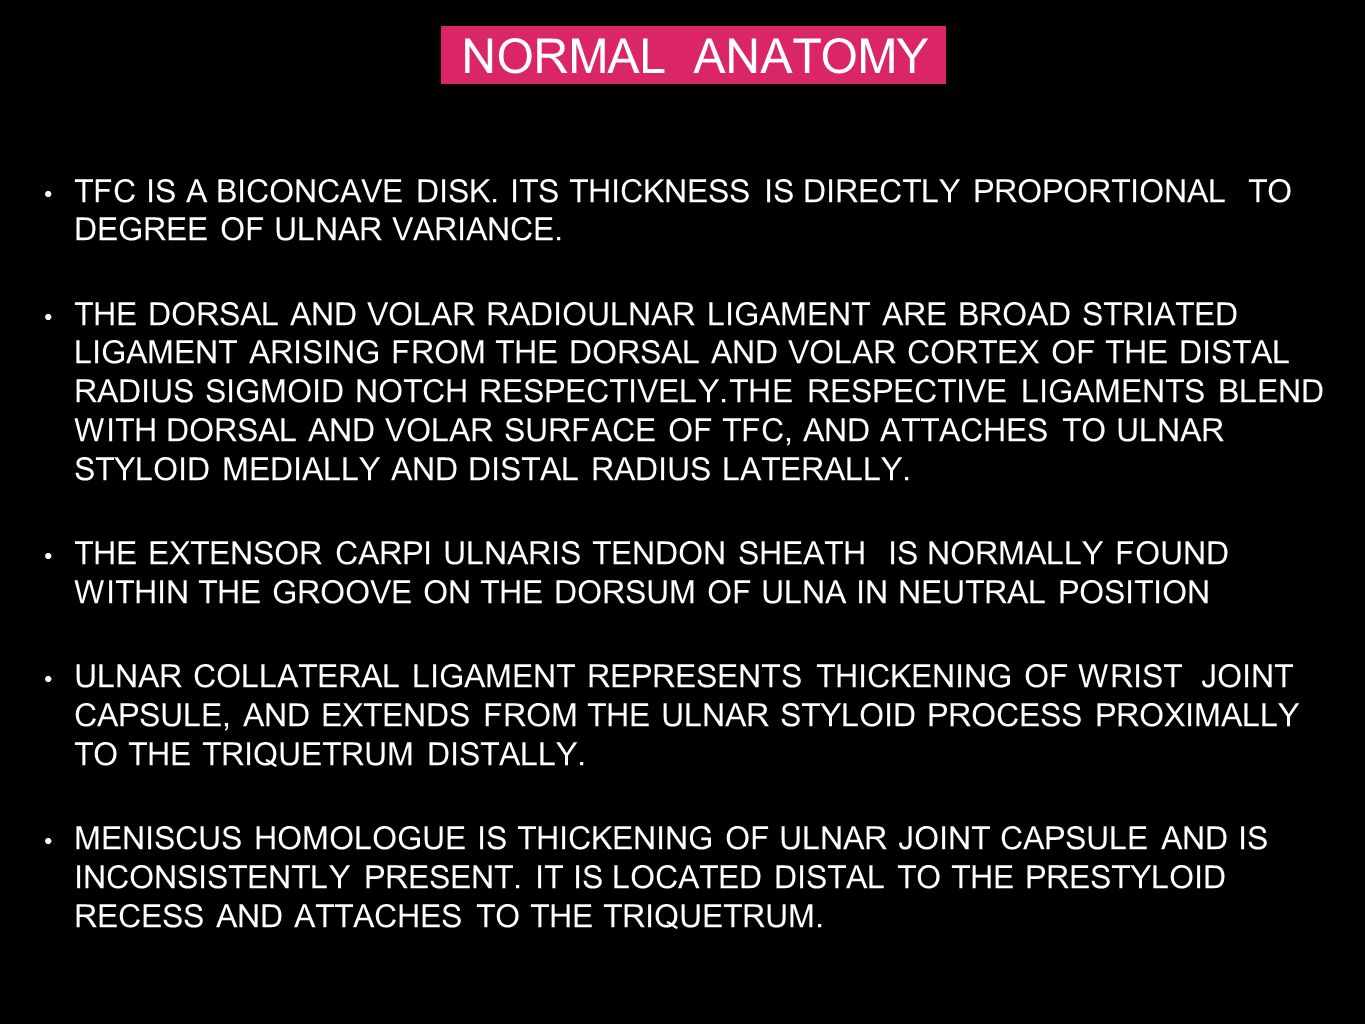 NORMAL ANATOMY TFC IS A BICONCAVE DISK. ITS THICKNESS IS DIRECTLY PROPORTIONAL TO DEGREE OF ULNAR VARIANCE.